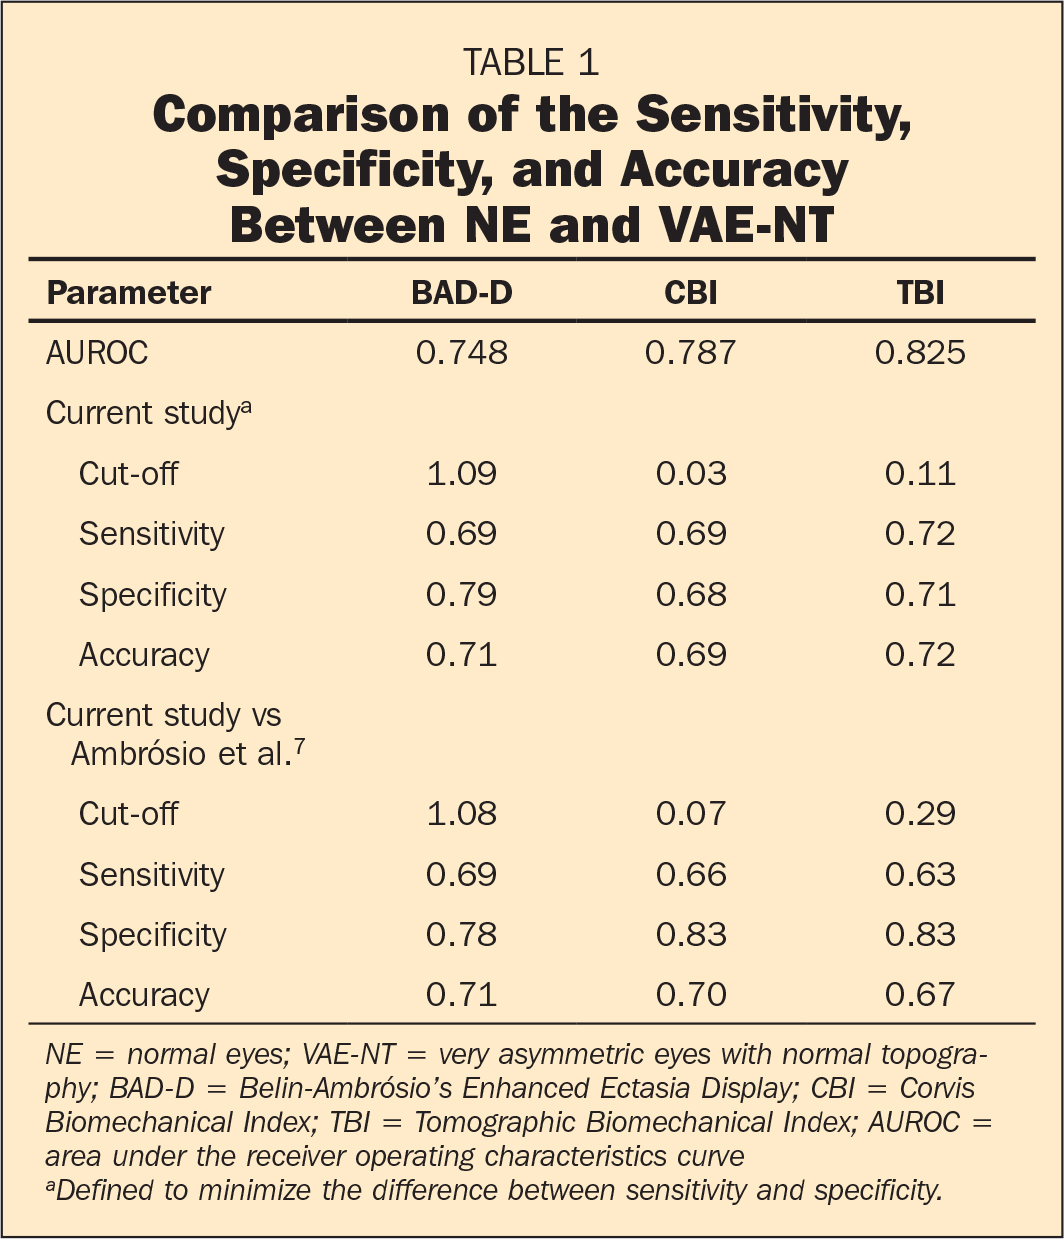 Comparison of the Sensitivity, Specificity, and Accuracy Between NE and VAE-NT